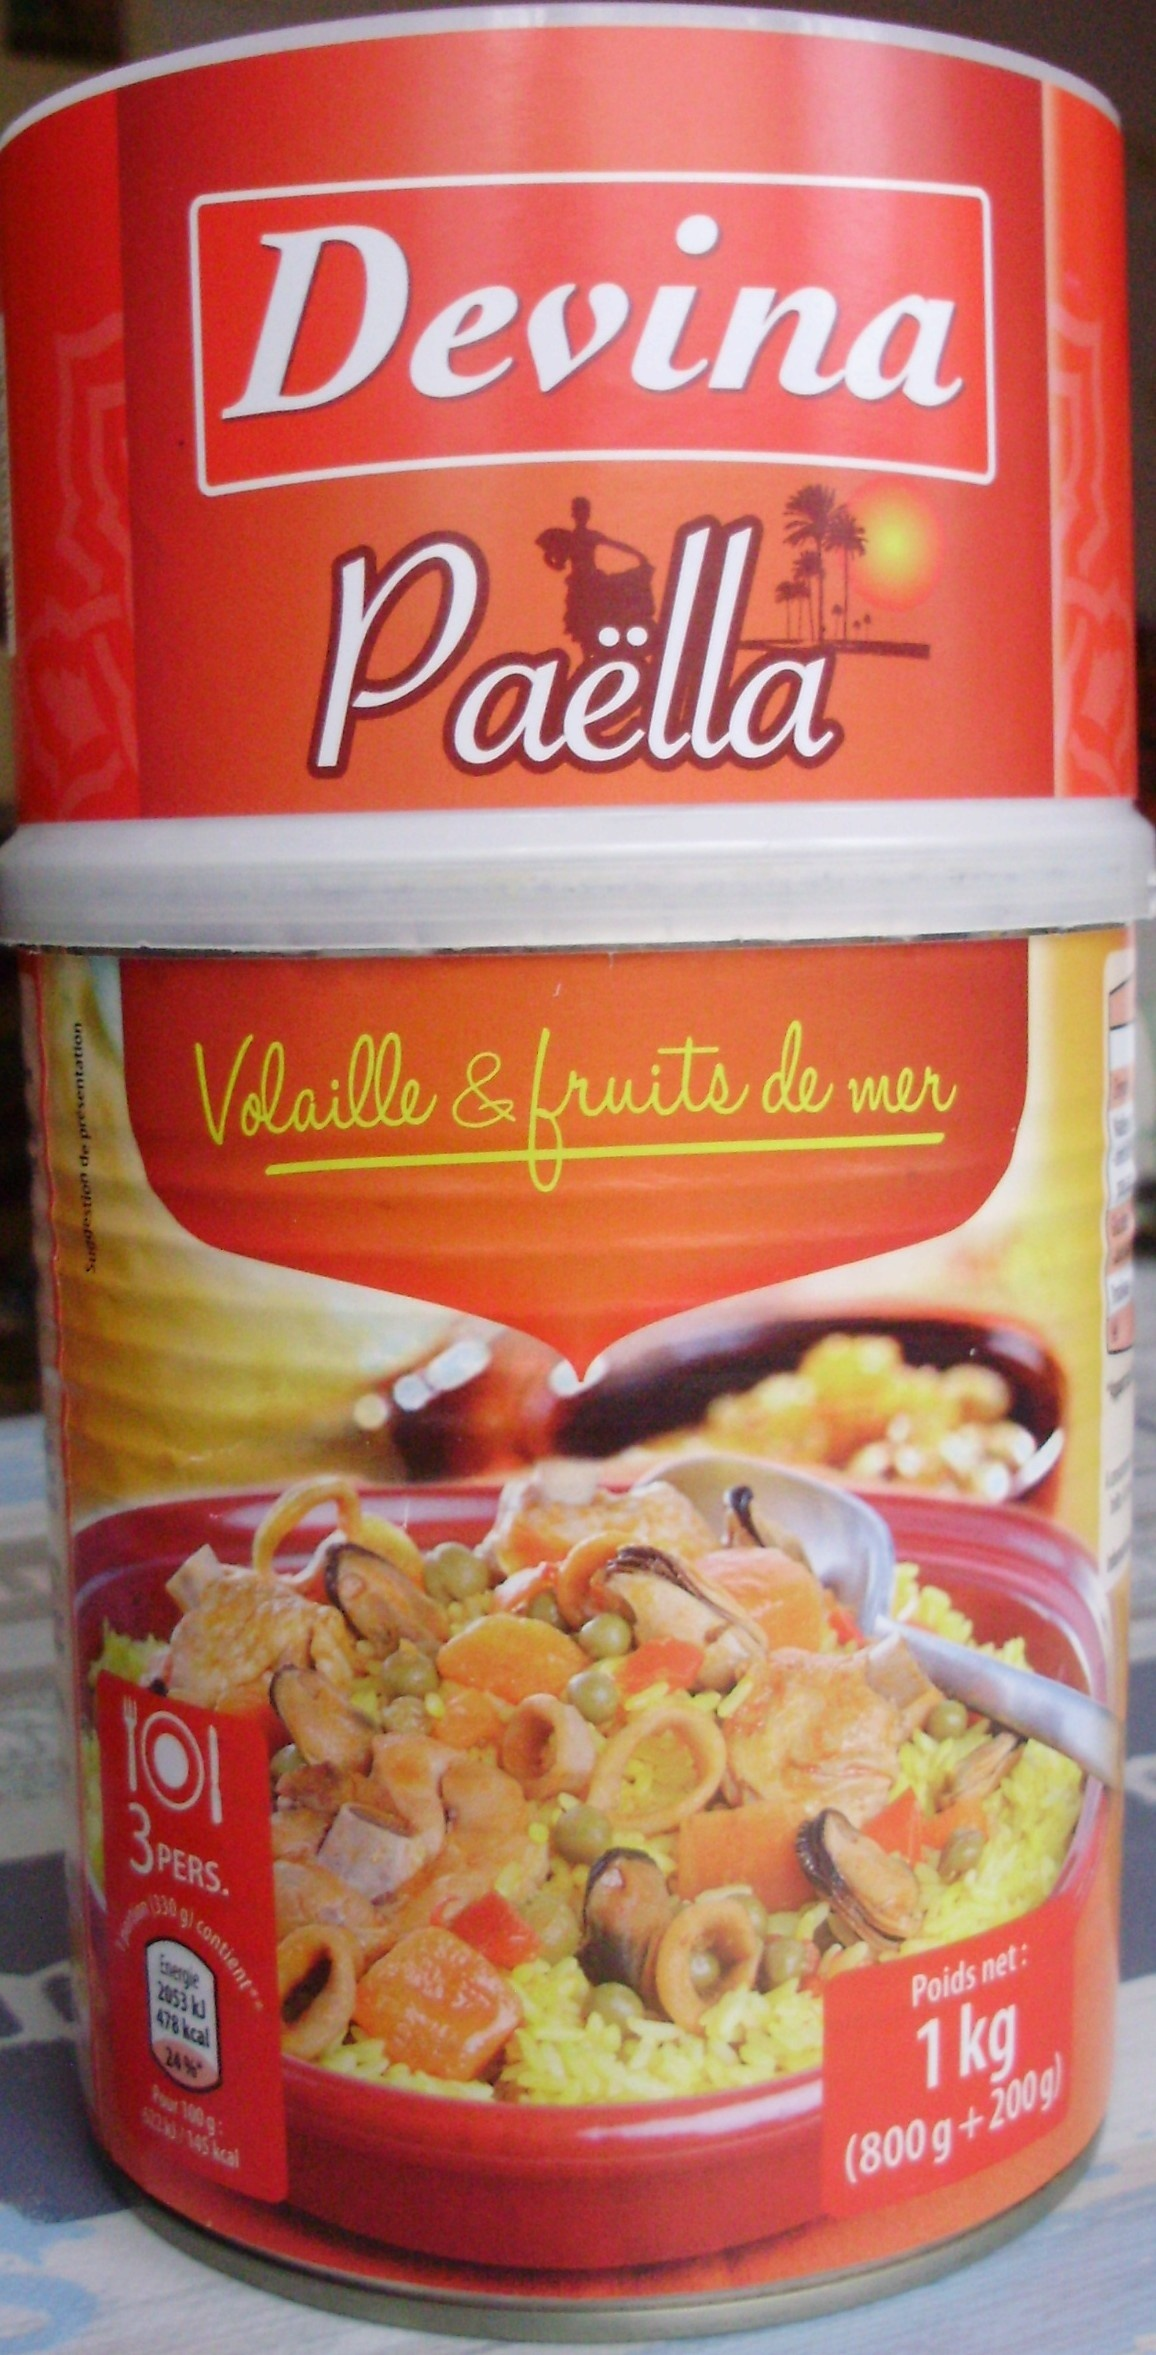 Paëlla (Volaille & fruits de mer) - Product